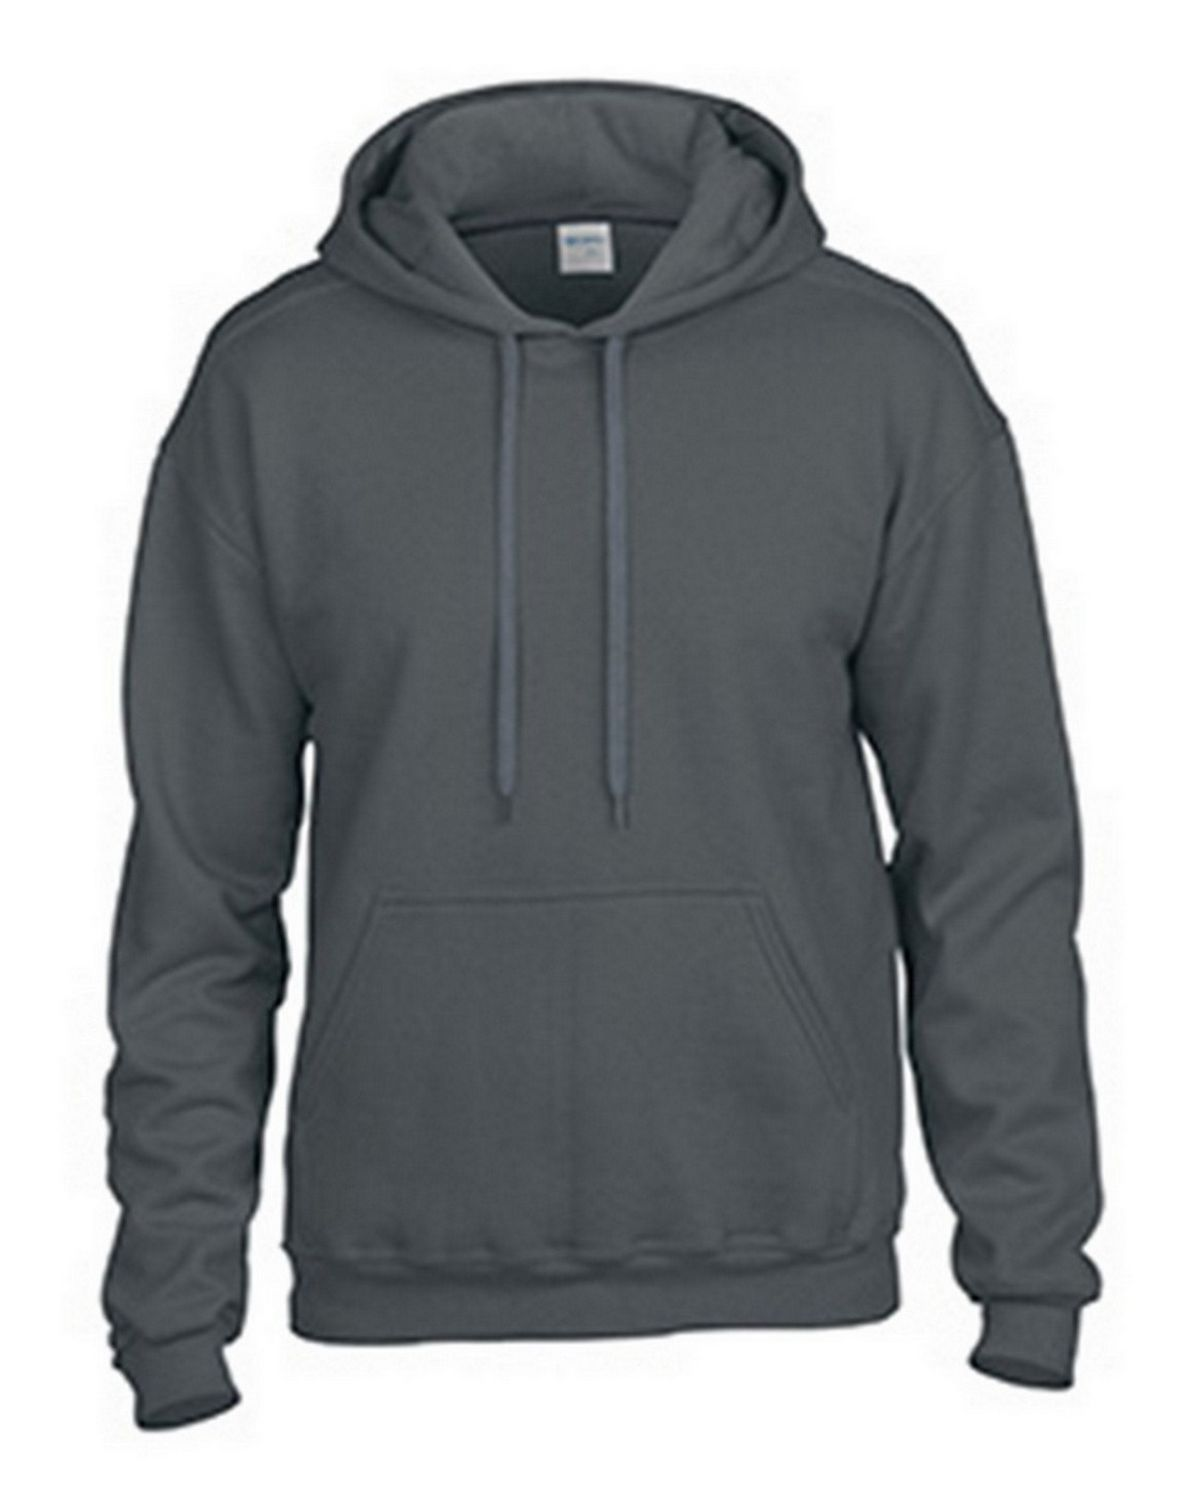 Gildan G92500 Adult Hooded Sweatshirt - Charcoal - 3X G92500